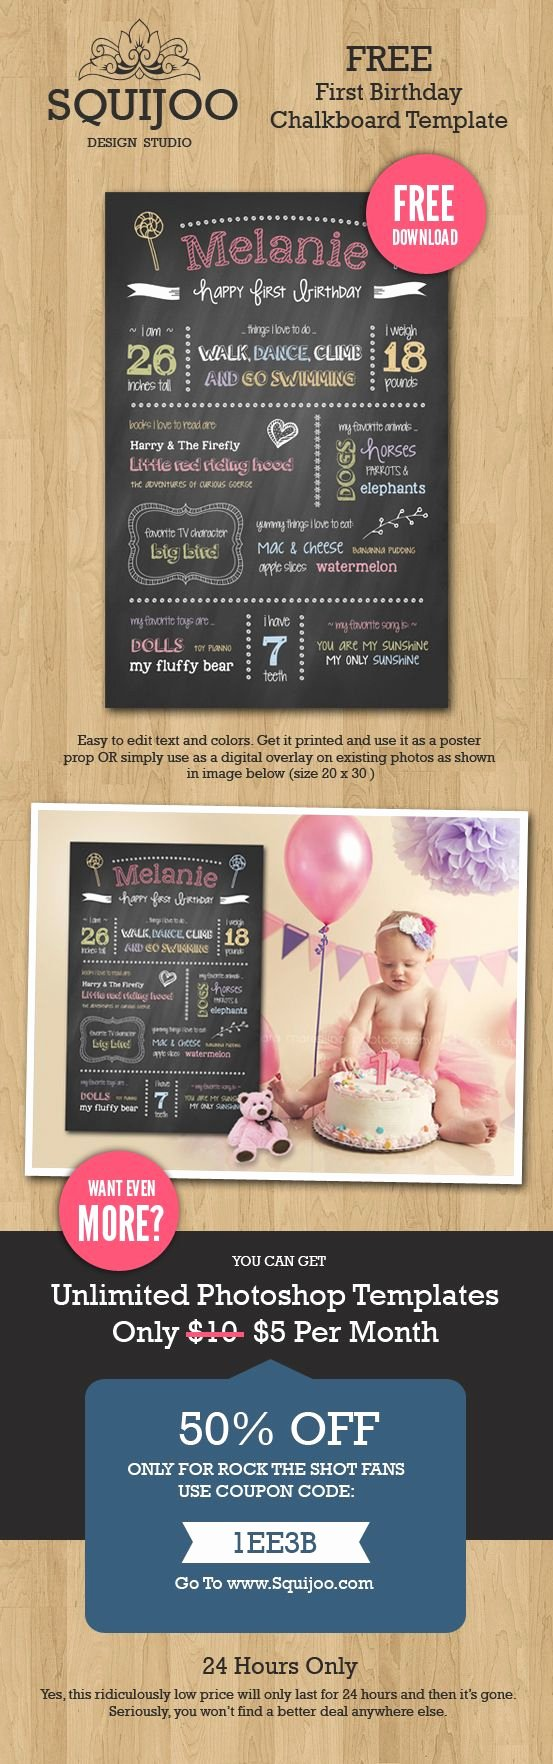 First Birthday Chalkboard Template Best Of Free Chalk Board Template for Shop